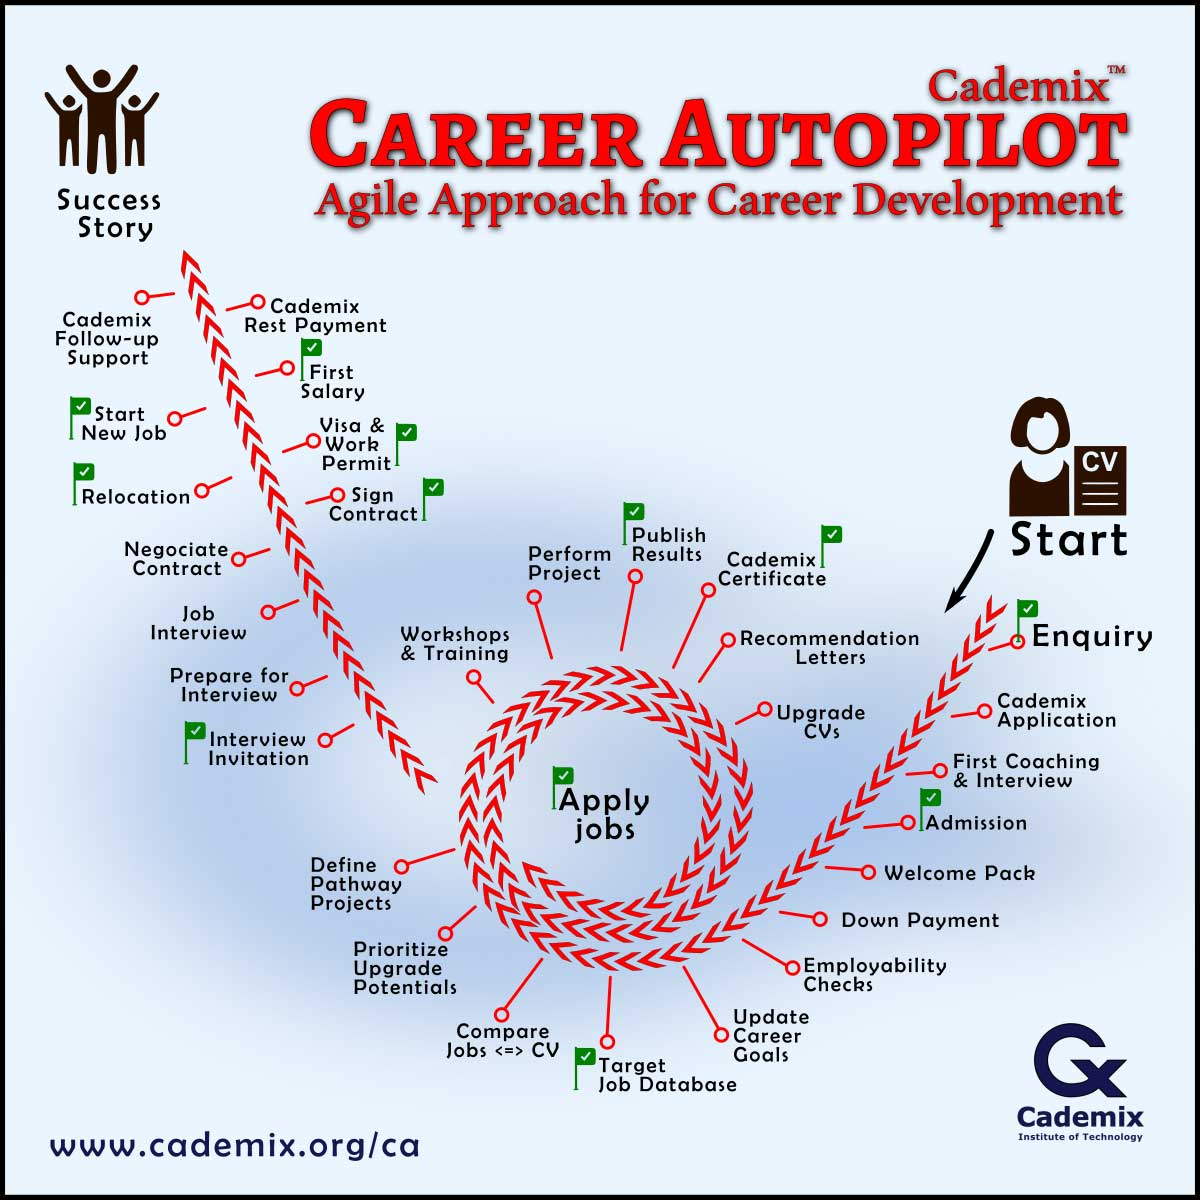 Cademix Career Autopilot Agile Career Development Pathway for Job seekers in Europe